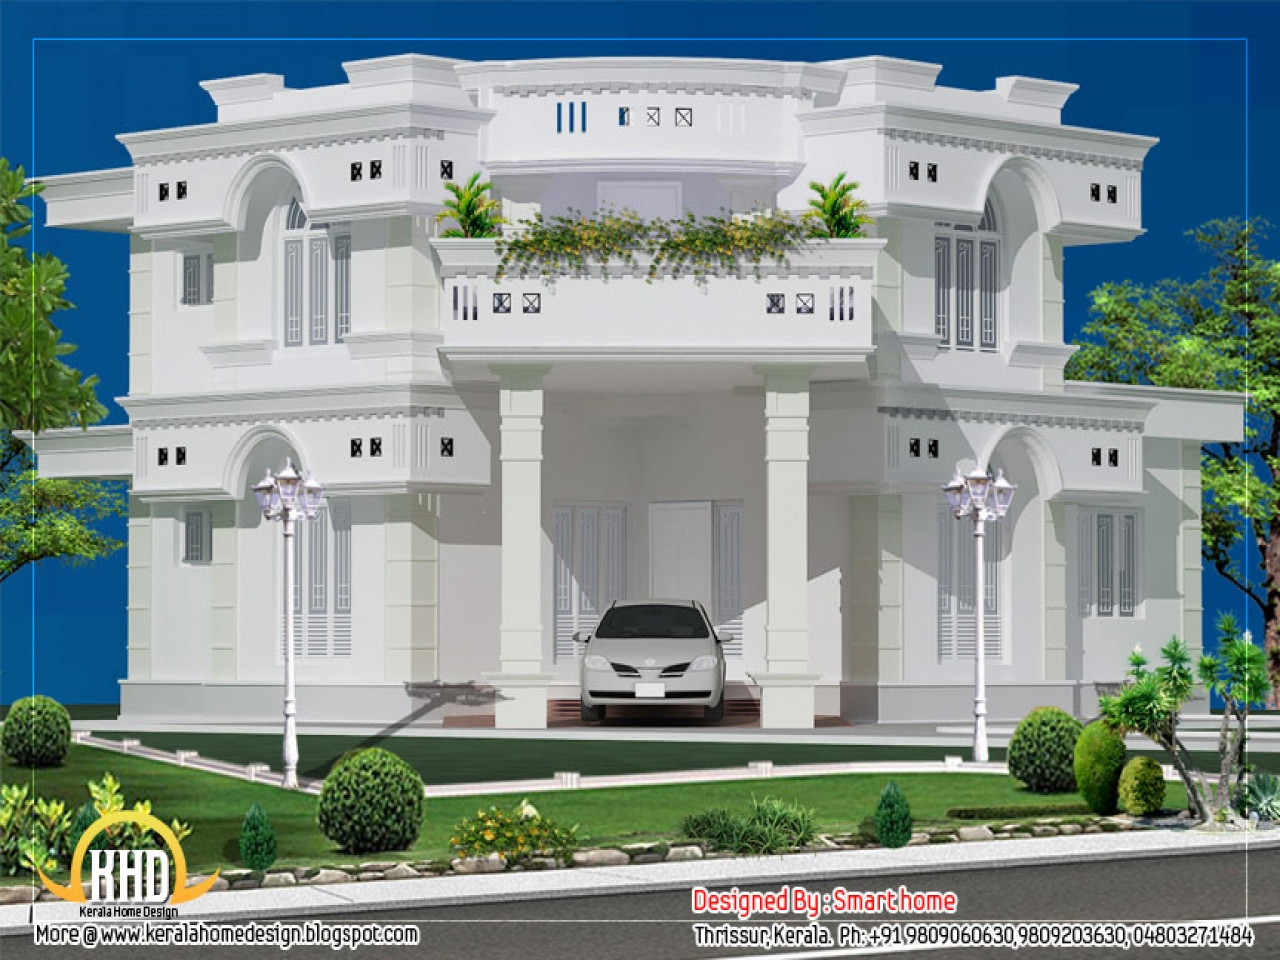 Elevation Views Of Houses Front House Elevation Design